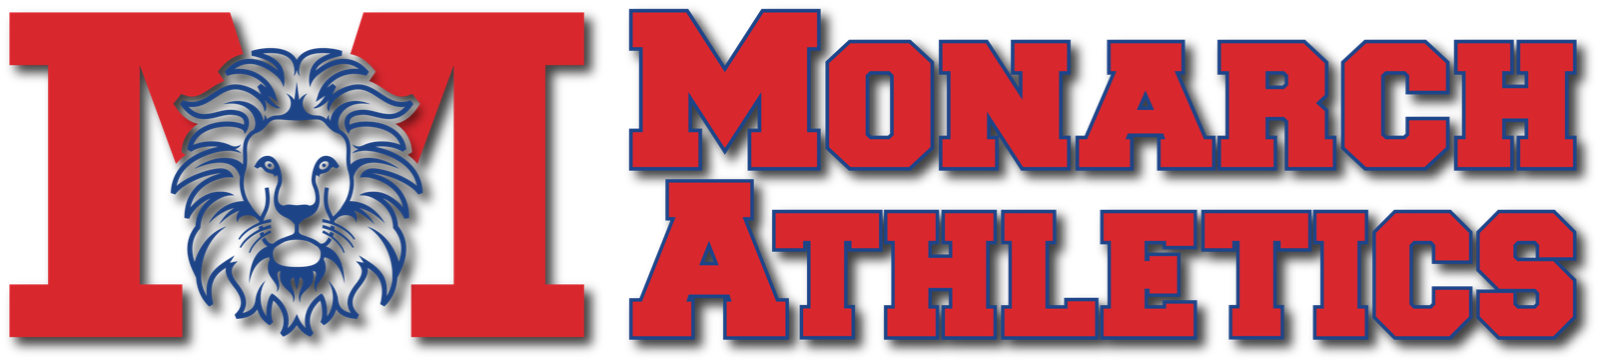 Familiar Faces Selected To Lead The Lady Monarchs Cheer & Basketball Programs